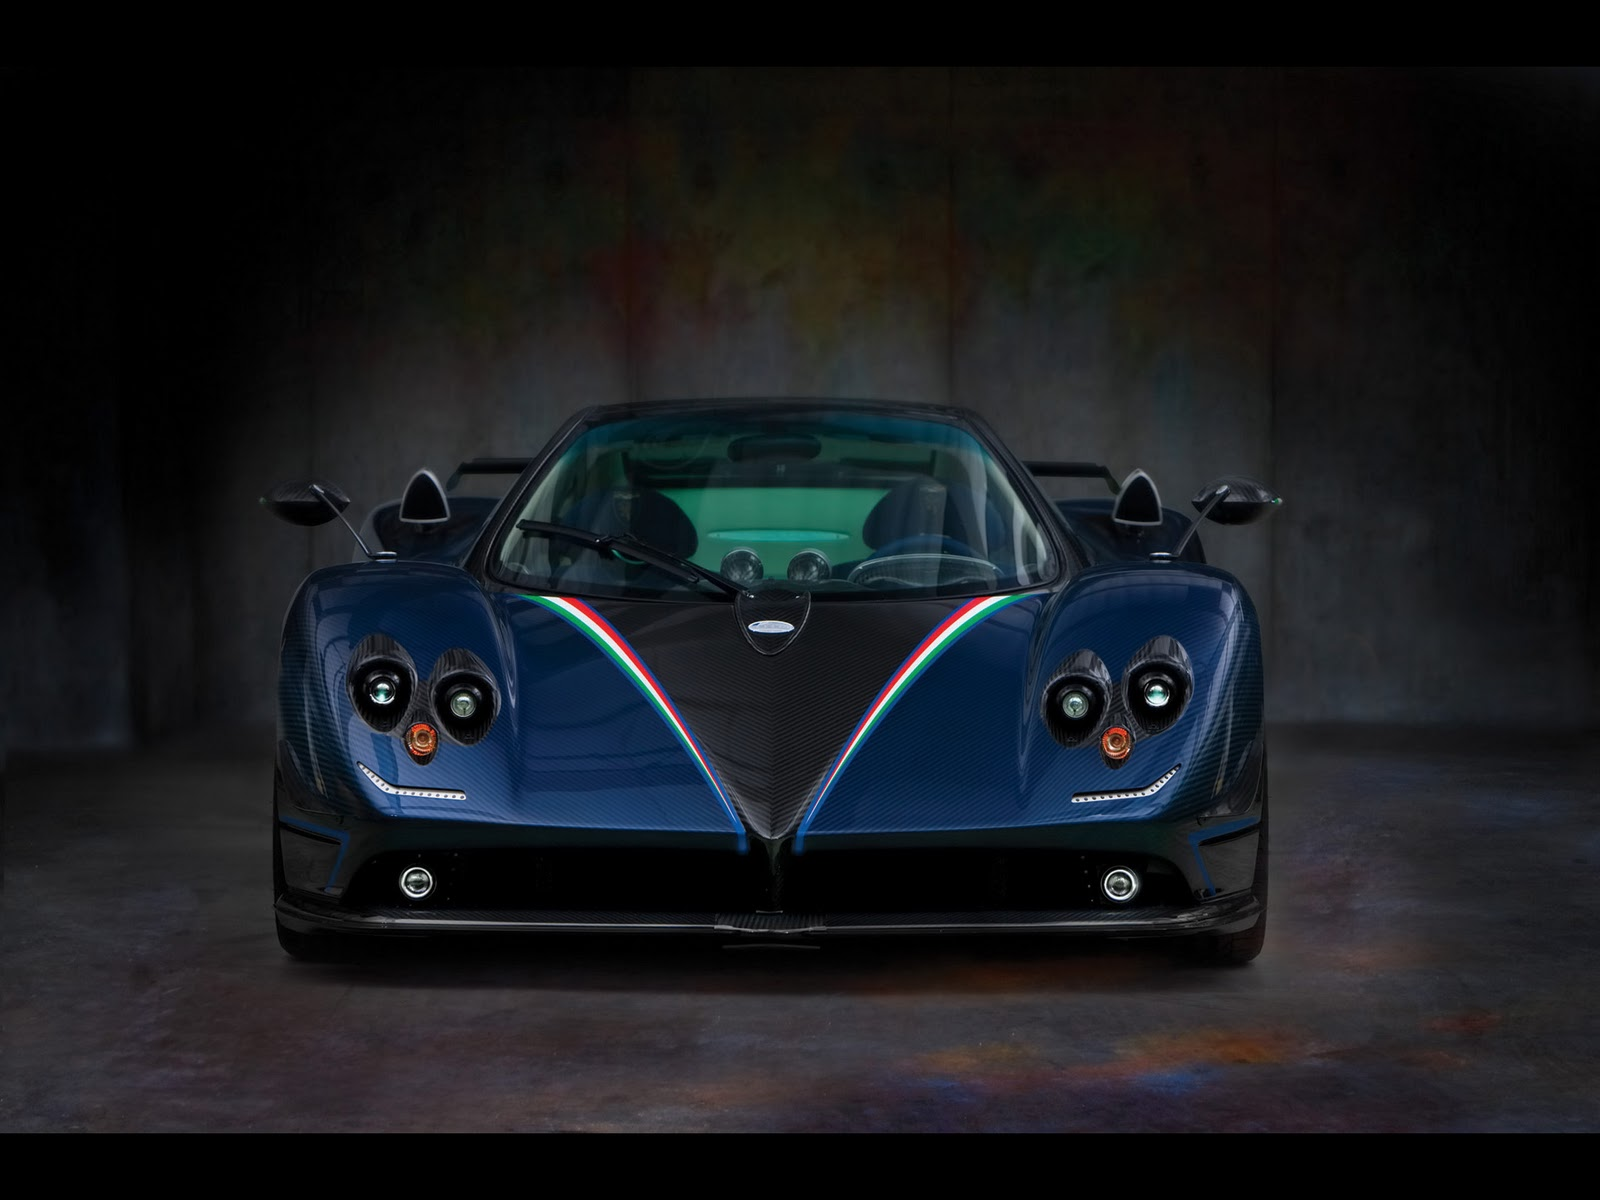 Pintures M Vich Cars Hd Wallpapers 2010 Pagani Zonda Tricolore